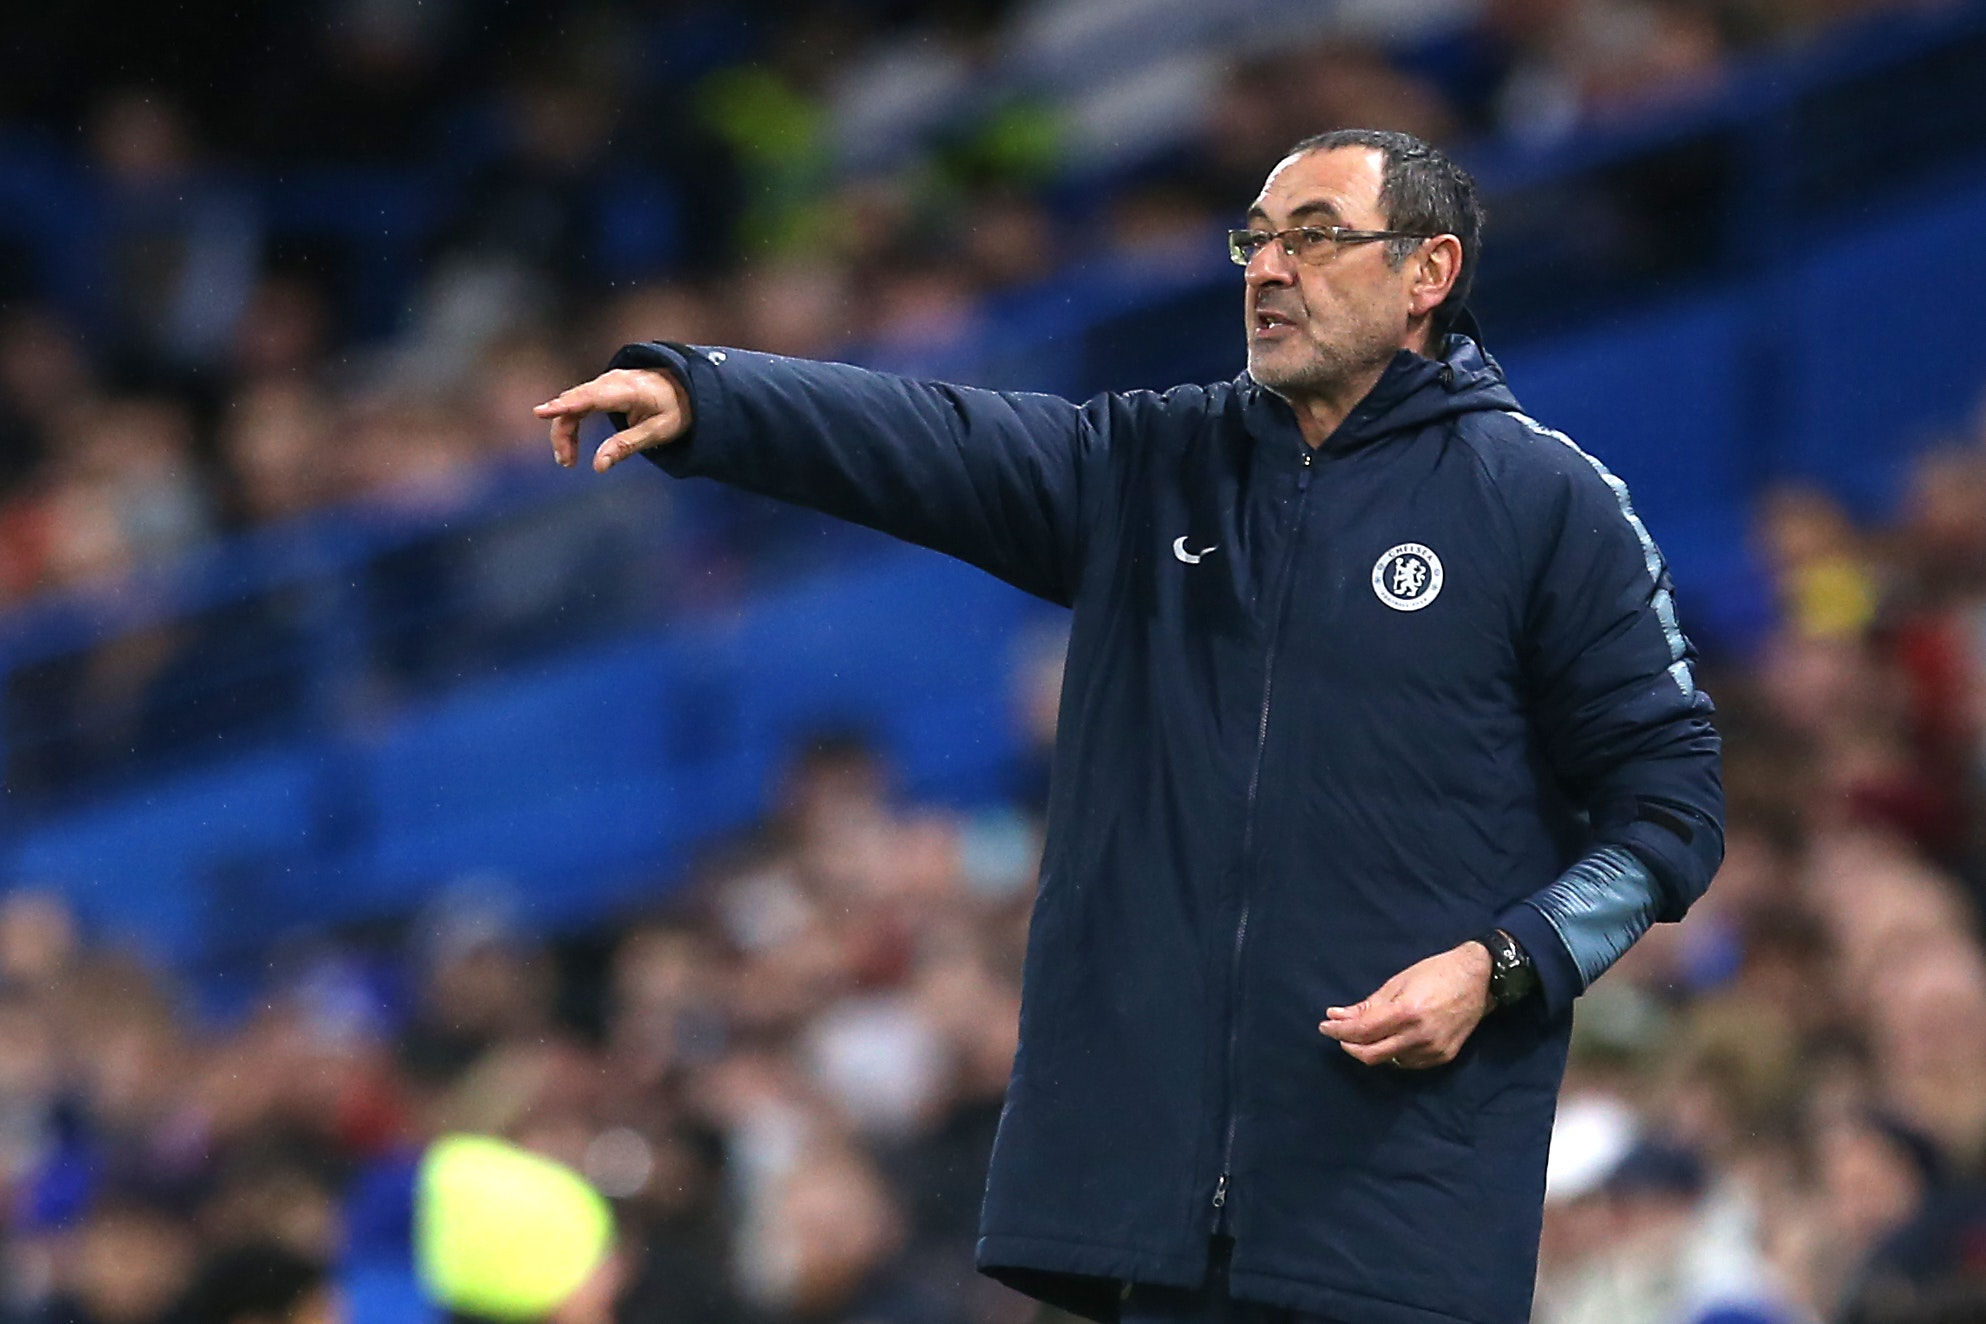 Maurizio Sarri does not want to face former side Napoli in the quarter-finals